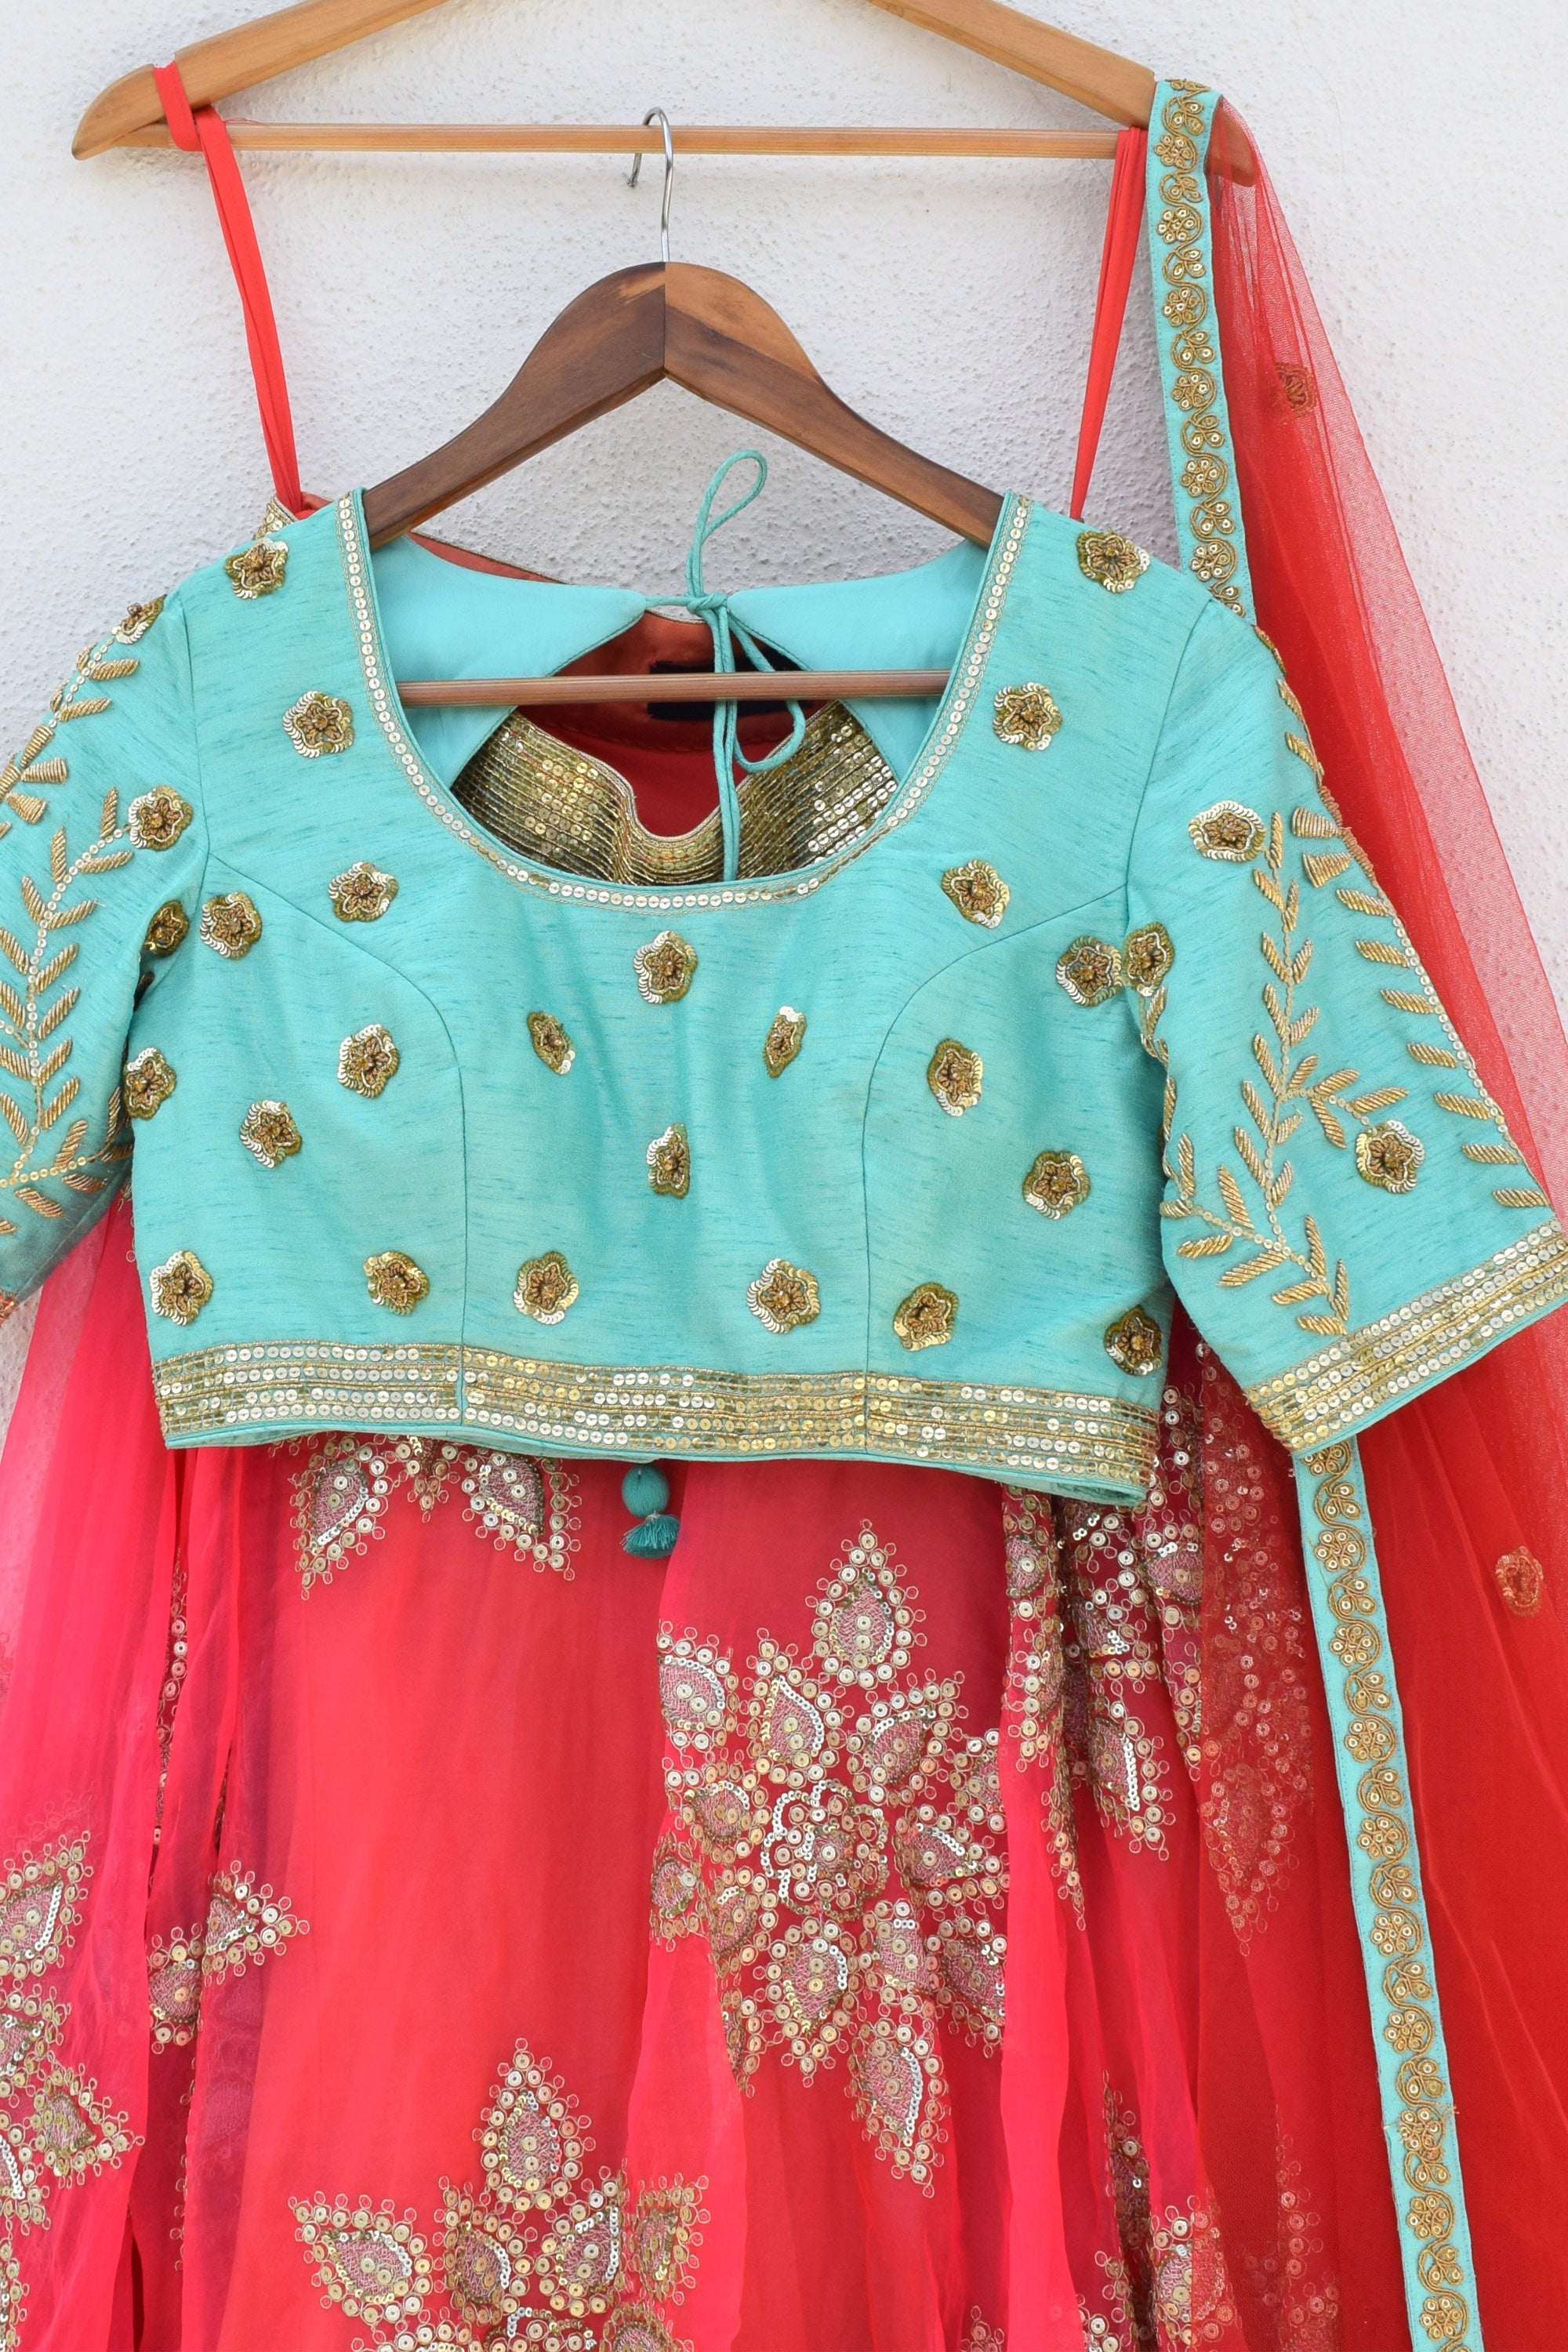 Orange & Turquoise Zardozi Lehenga Front CloseUp